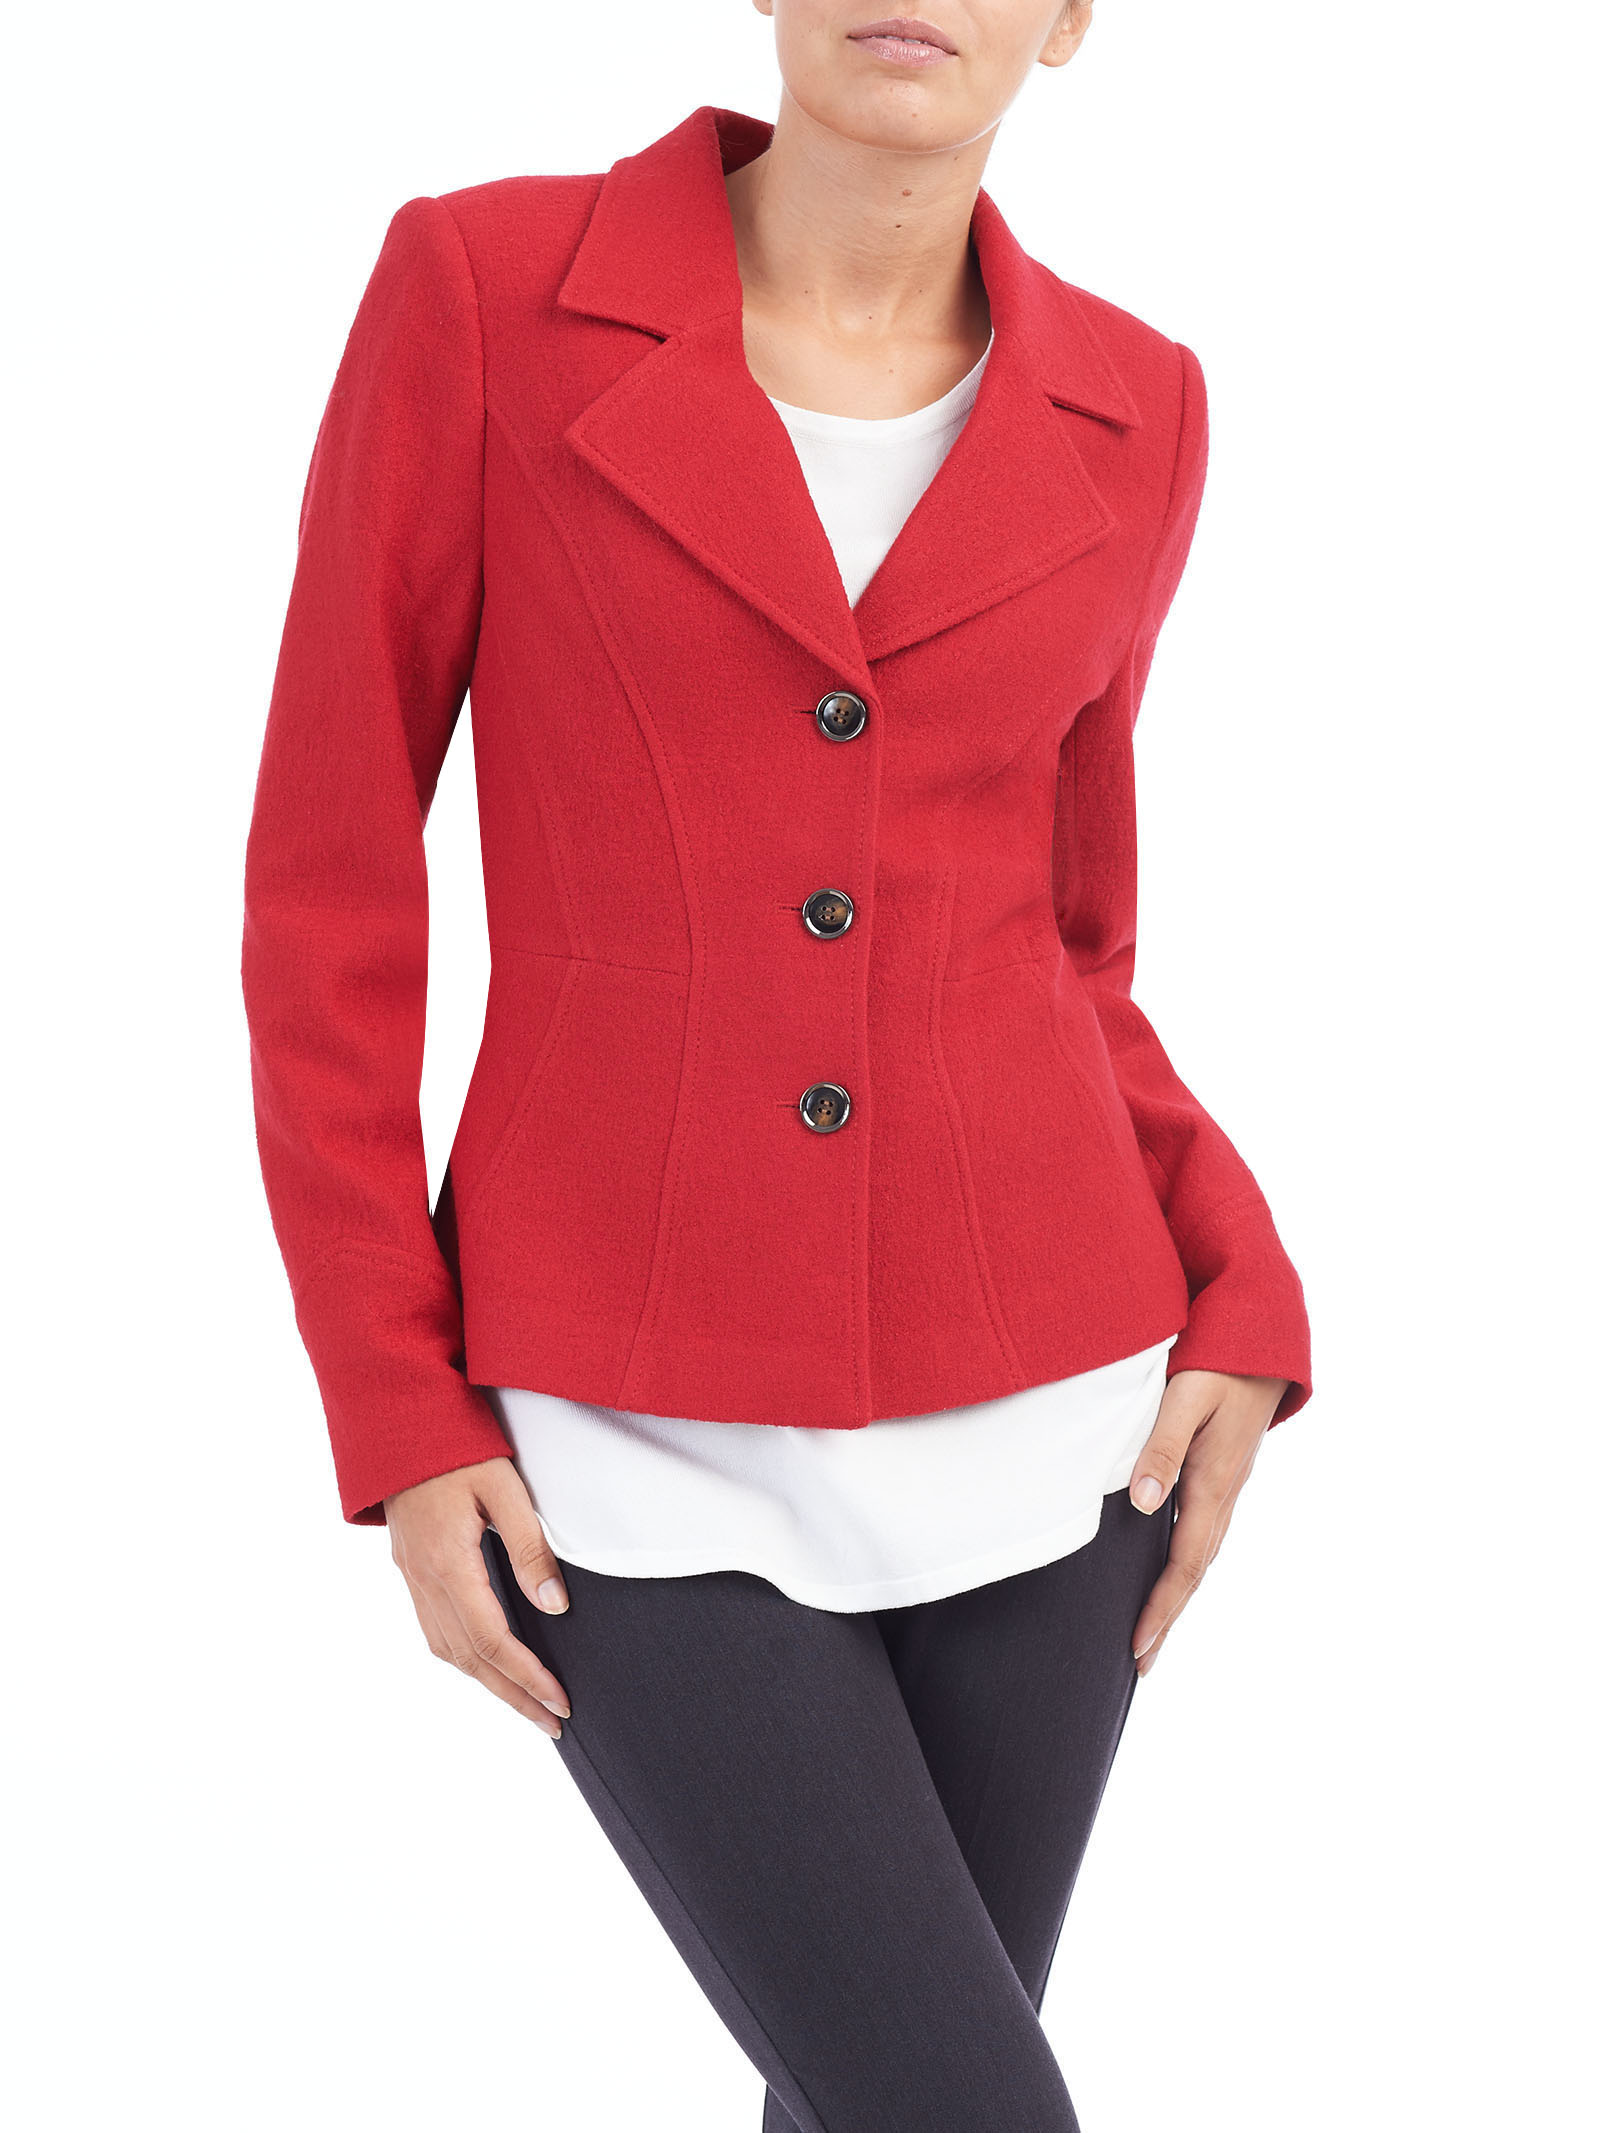 Notch Collar Wool Blend Jacket, Red, hi-res